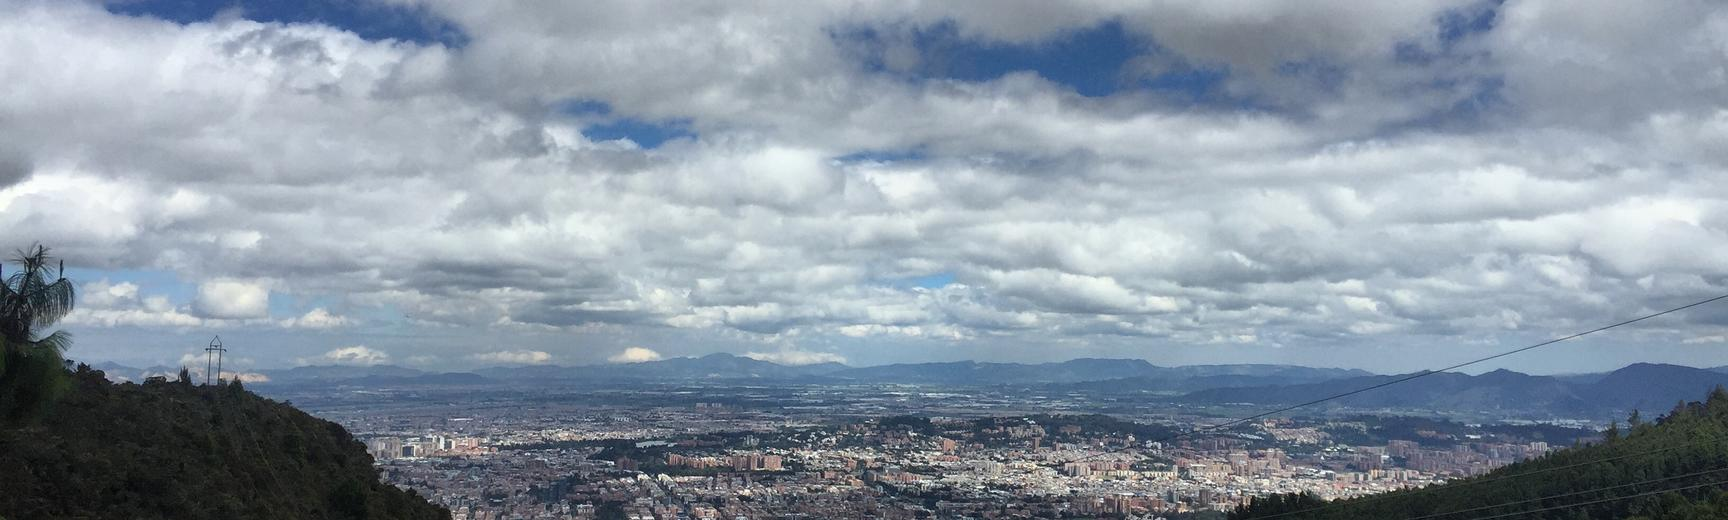 Aerial image of Bogota, Colombia